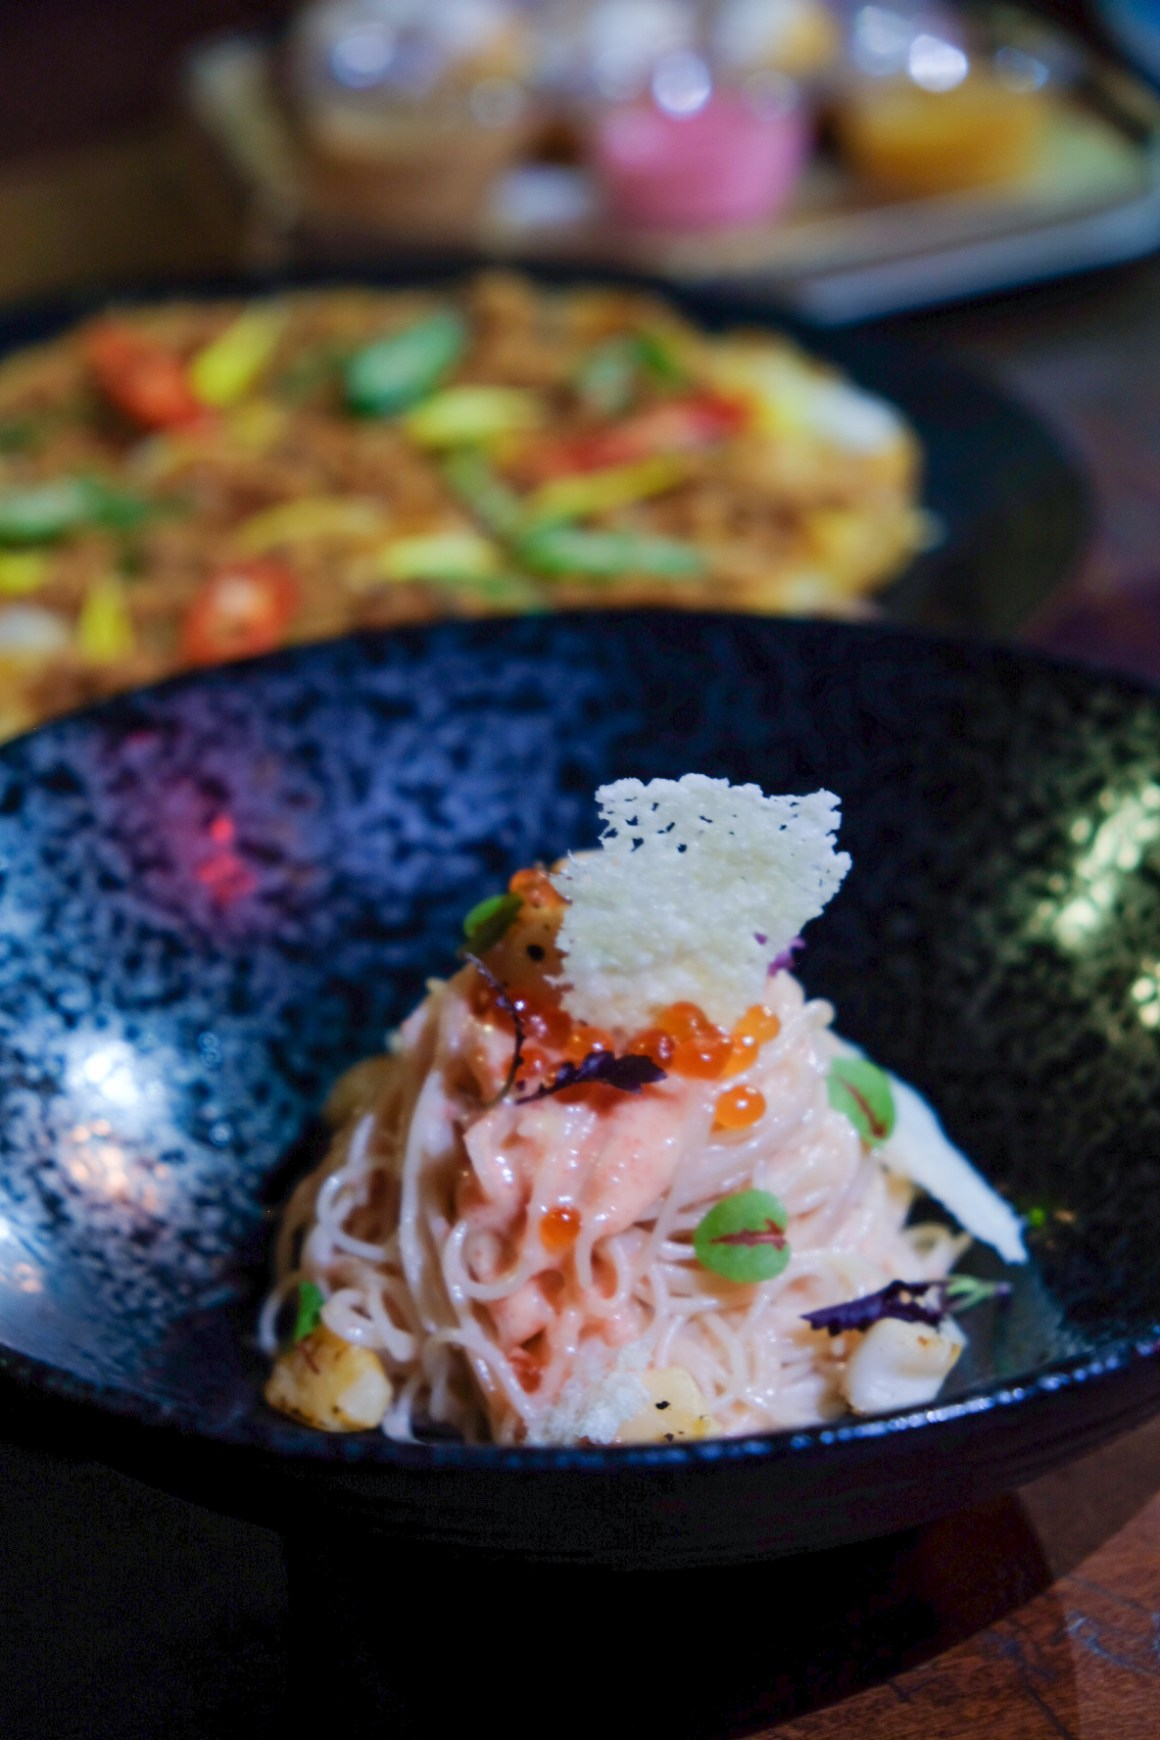 Wan Bar + Kitchen At Suntec City, Delicious Bar Grub With Alcoholic Bubble Tea - Angel Hair Pasta With Mentaiko and Scallop